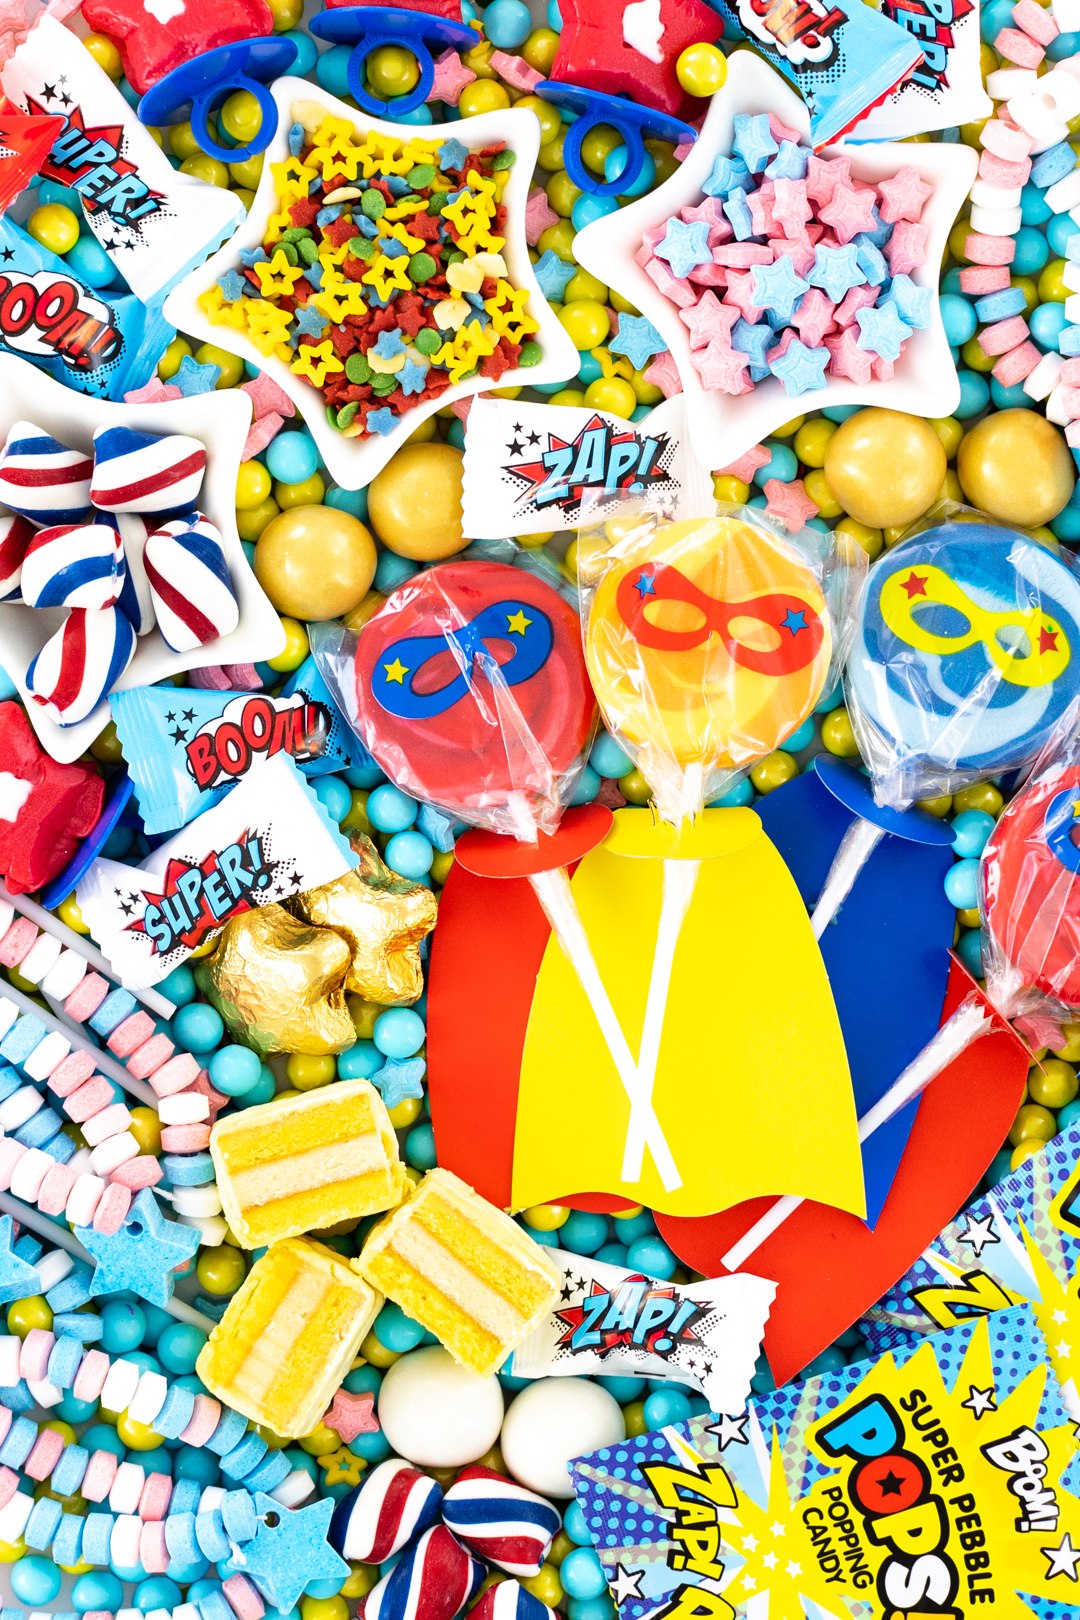 superhero candies, lollipops, cakes, candy sticks and buttermints